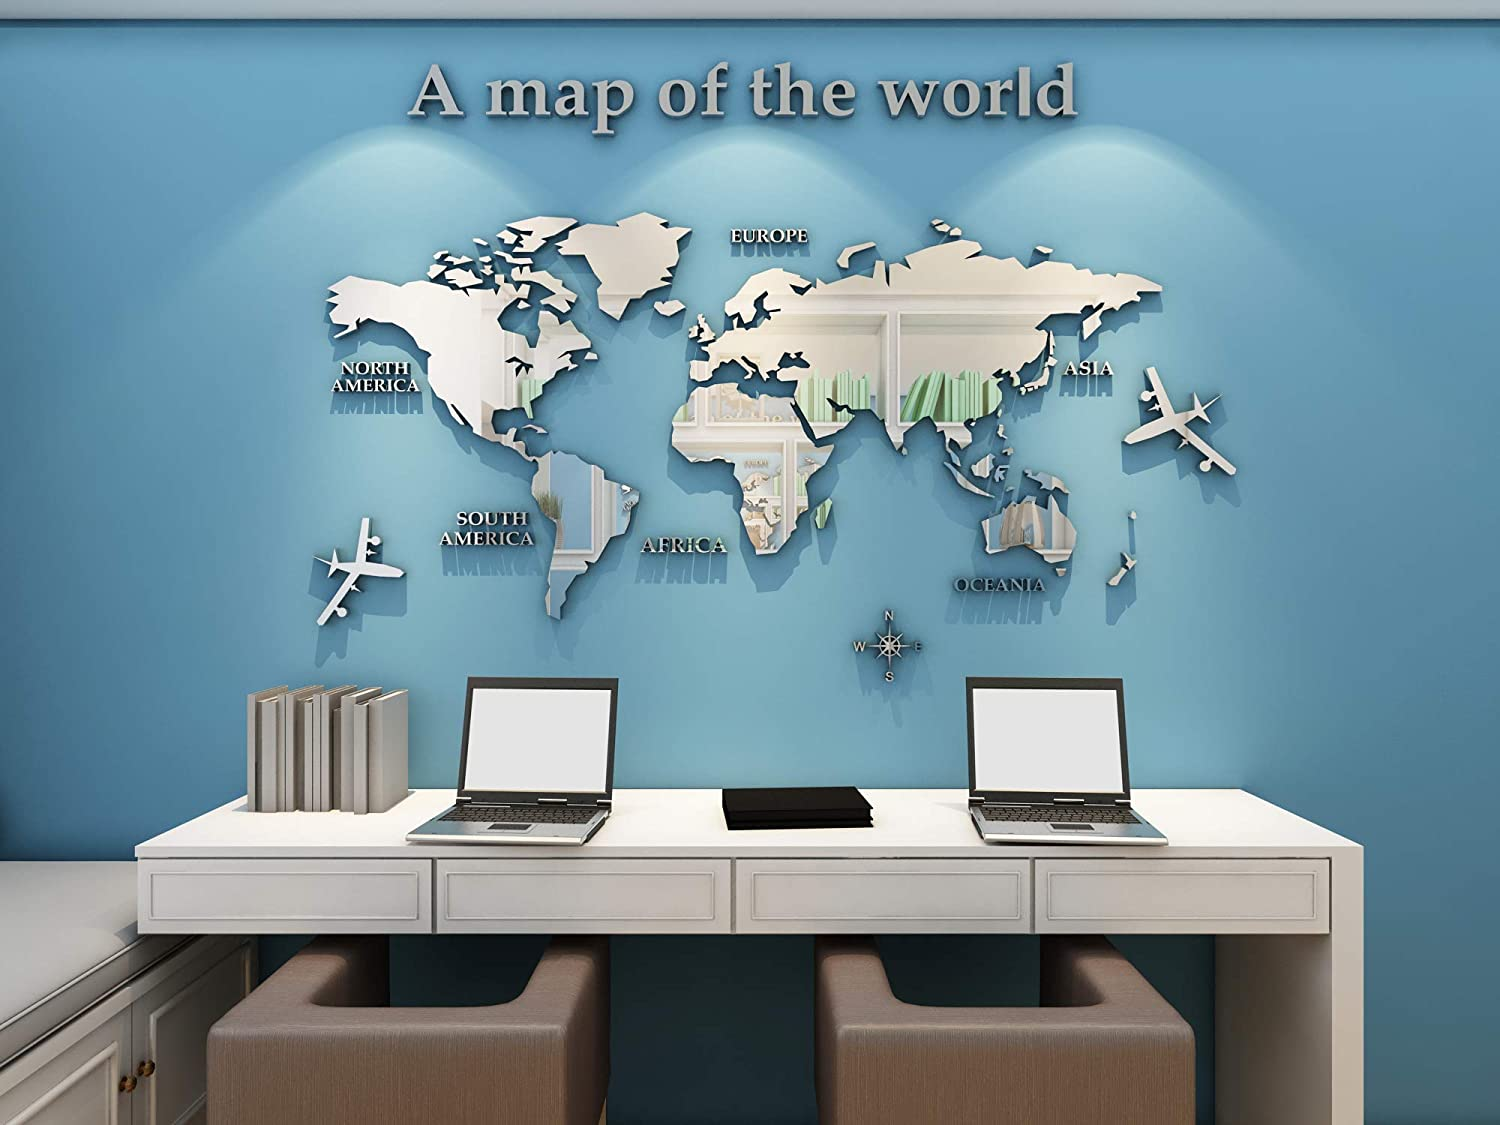 KINBEDY Acrylic 3D Wall Stickers Silver World Map Wall Decal Easy to Install &Apply DIY Decor Sticker Home Art Decor Silver.